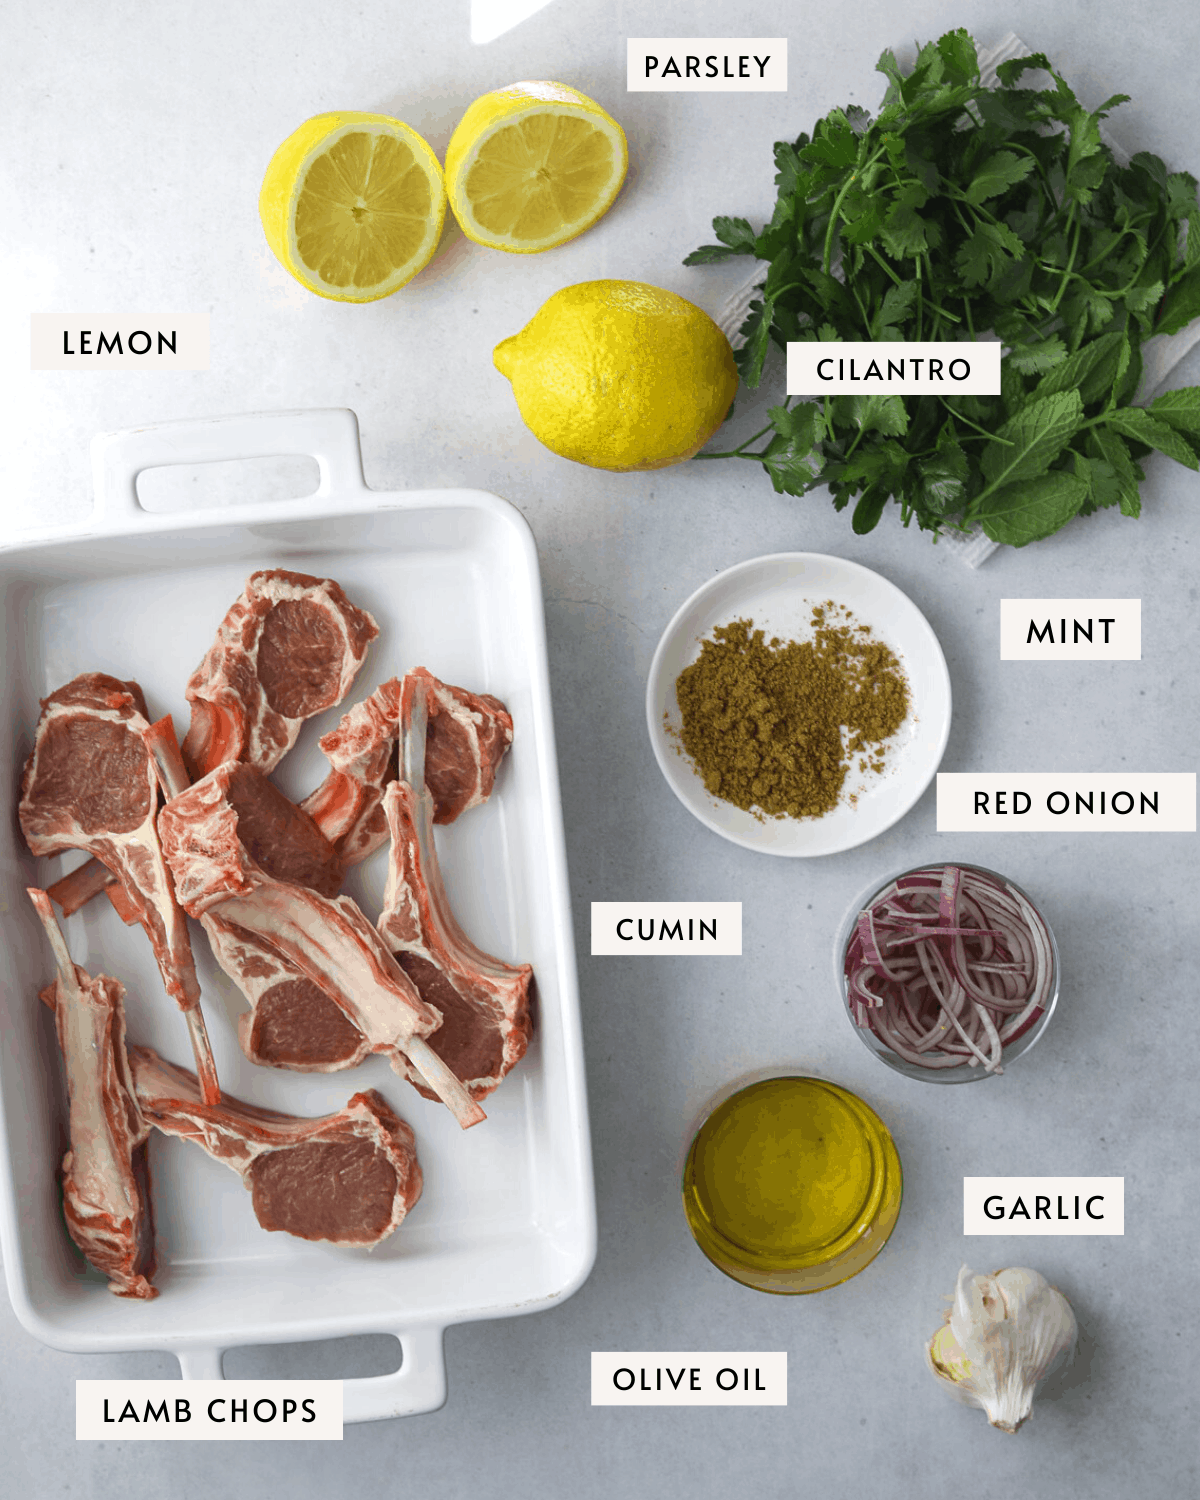 recipe ingredients, a platter of lamb chops, lemons, herbs, red onion, cumin and olive oil